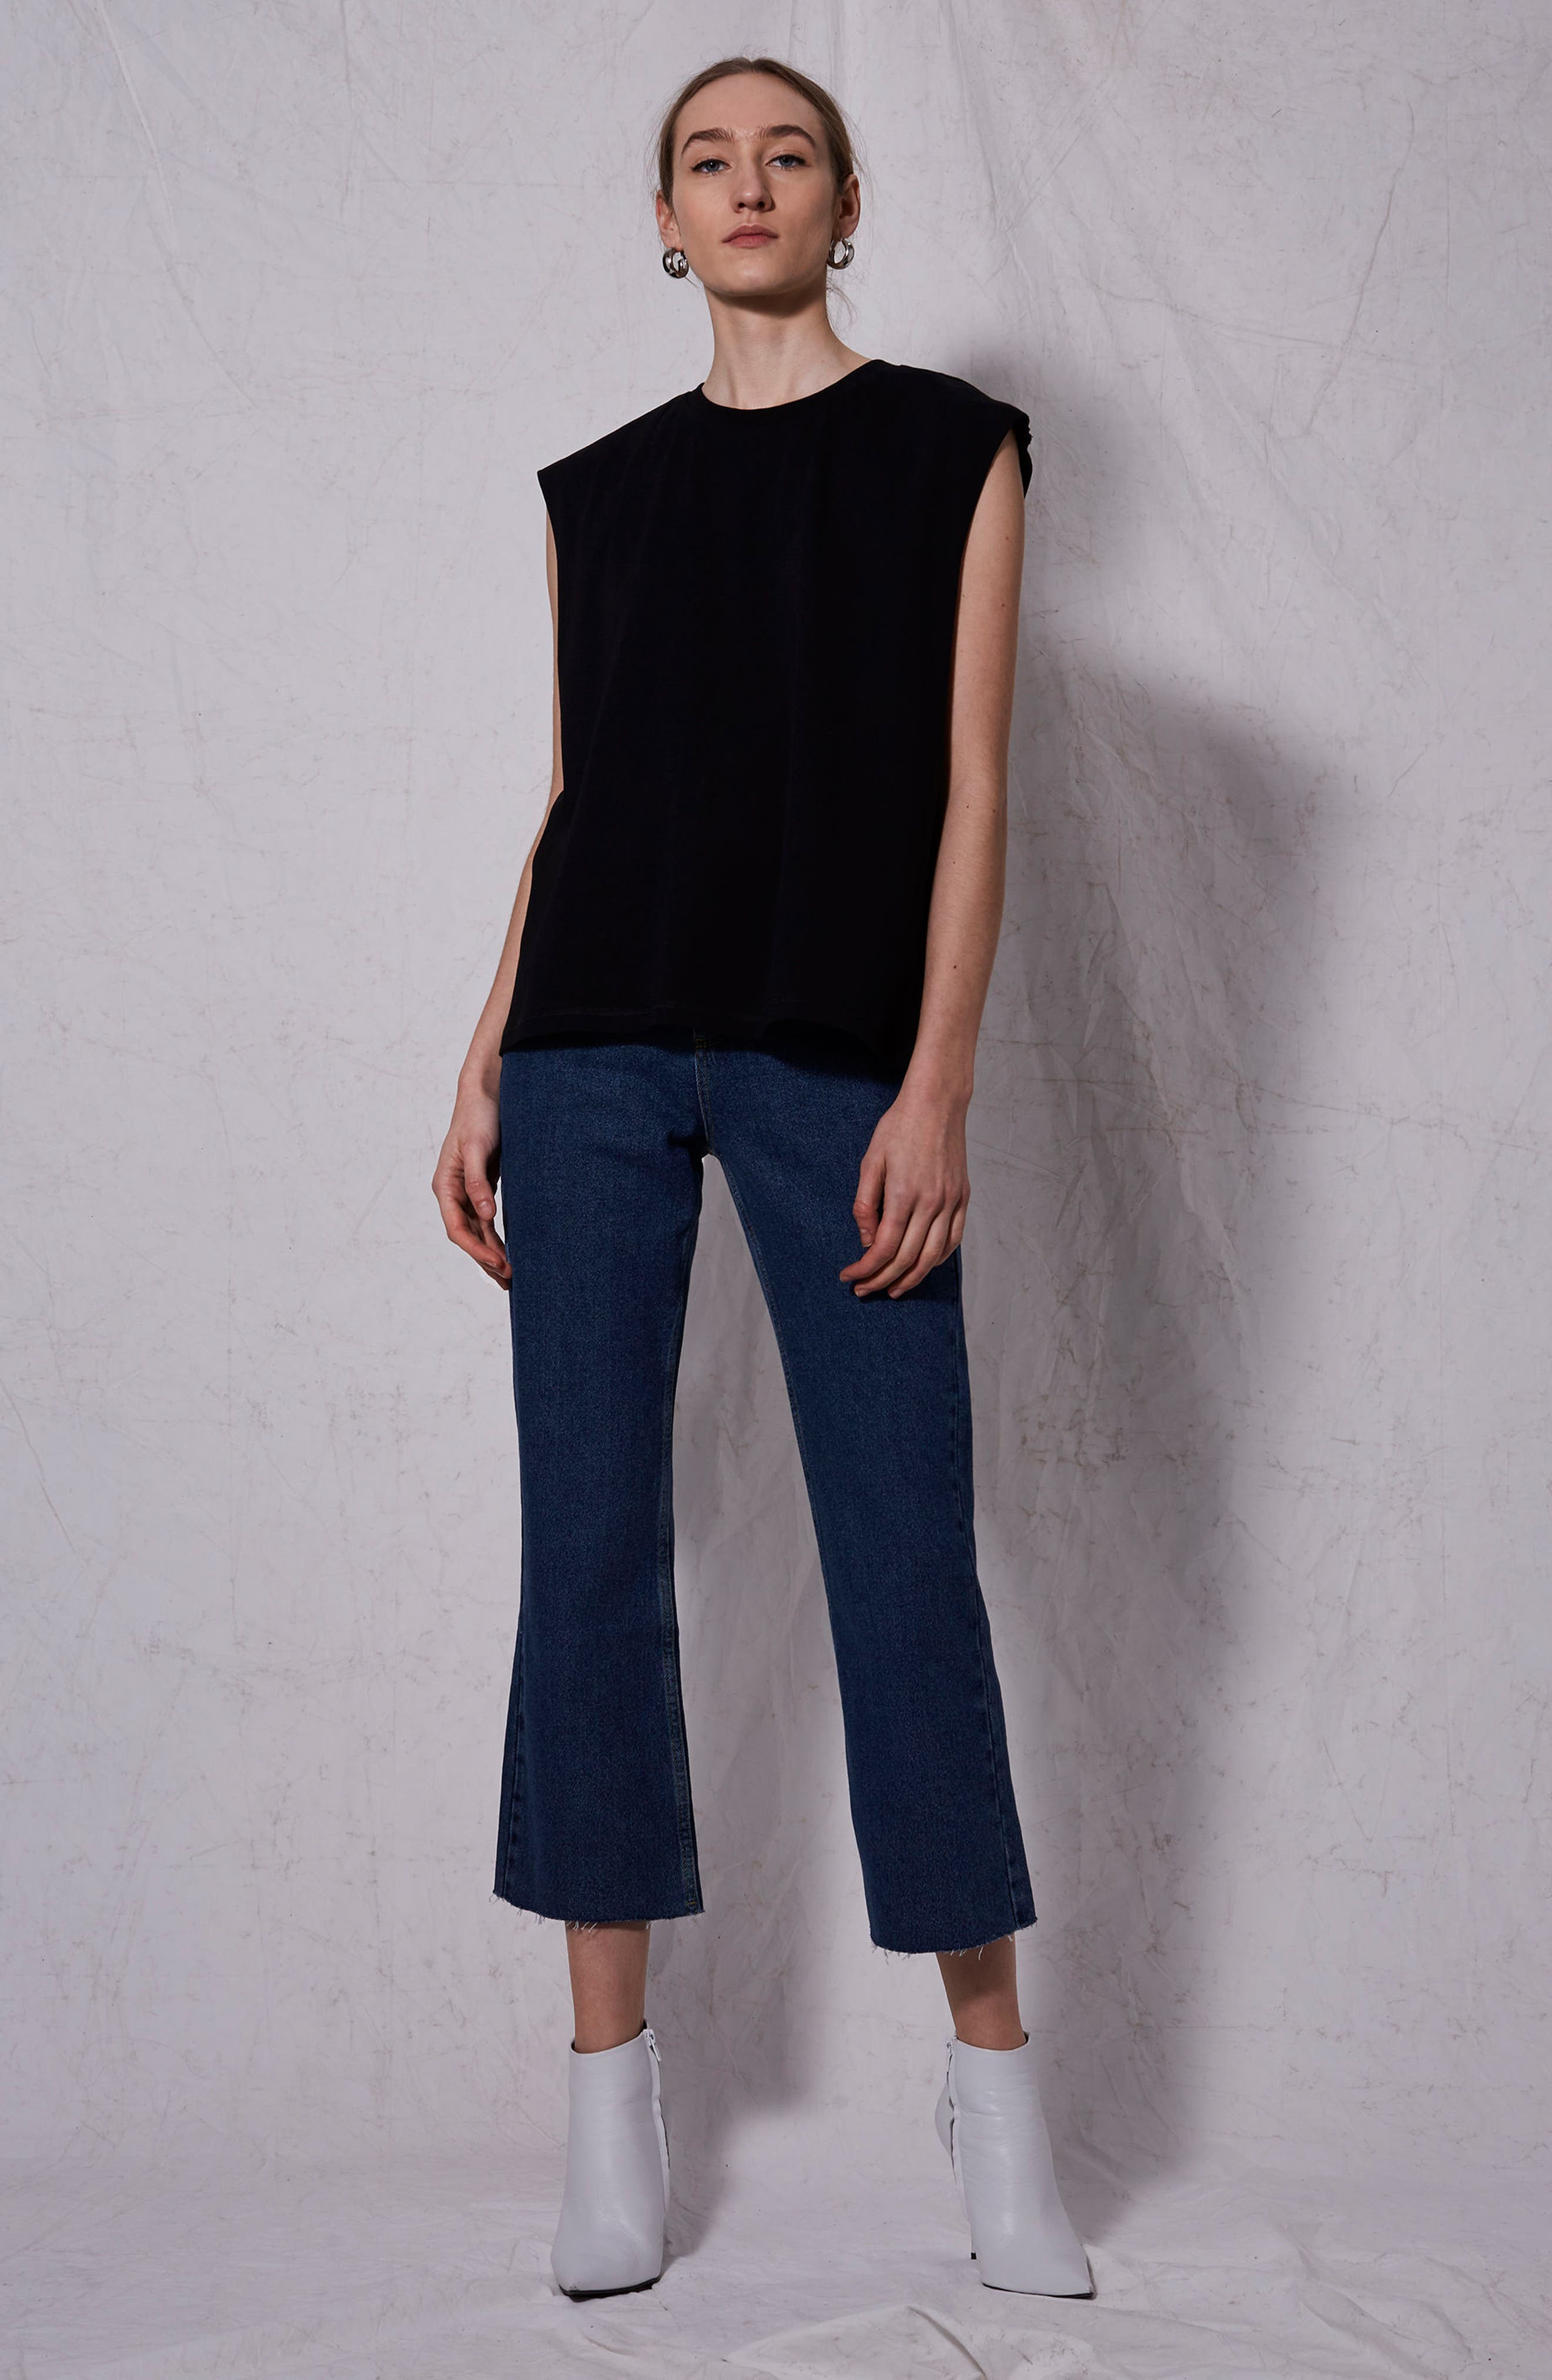 Raw Sleeve Top,                             Alternate thumbnail 4, color,                             001